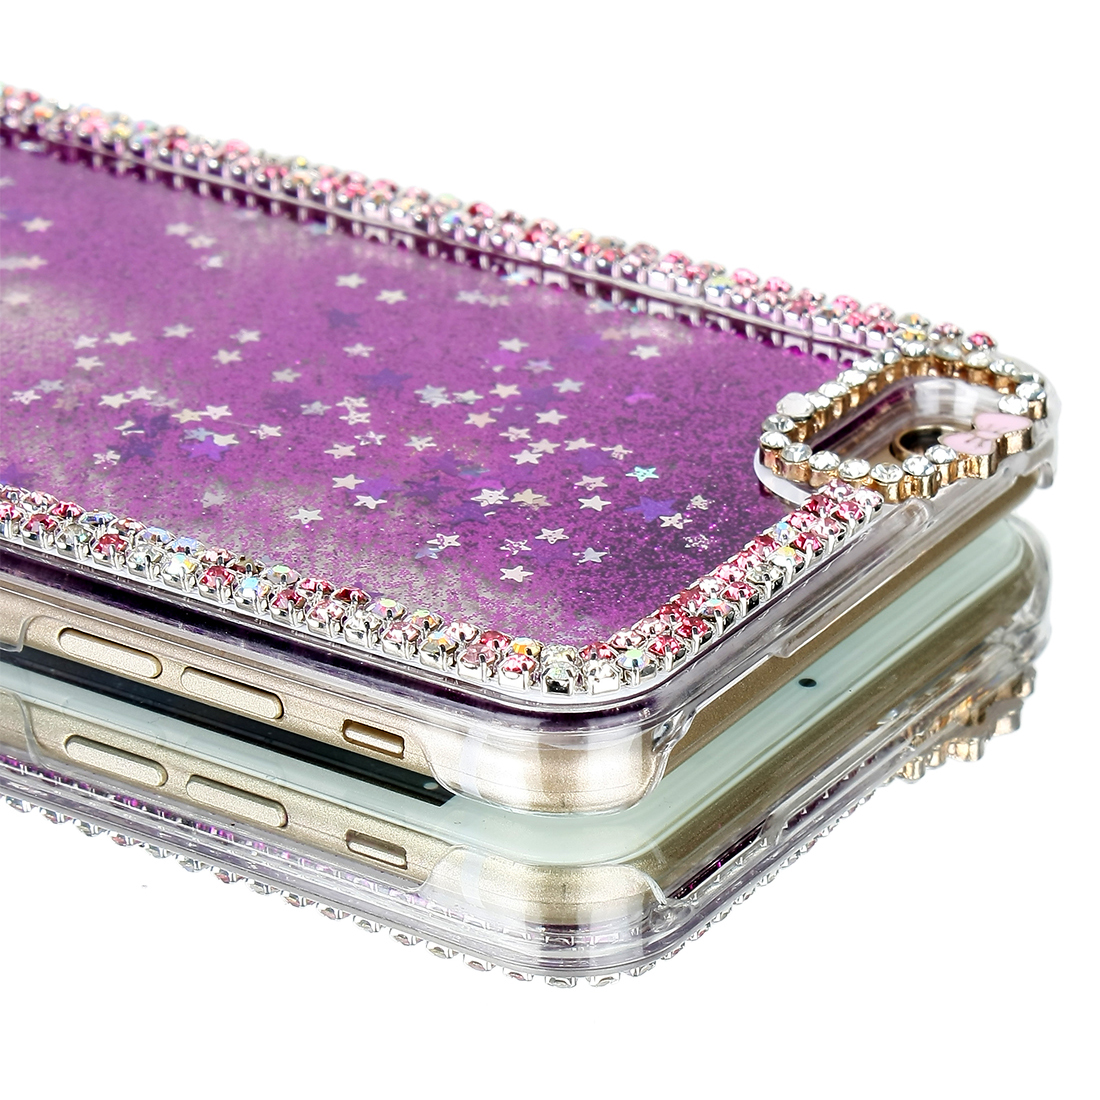 New Luxury Crystal Bling Faux Diamond Quicksand Case Cover For iPhone 6 Plus